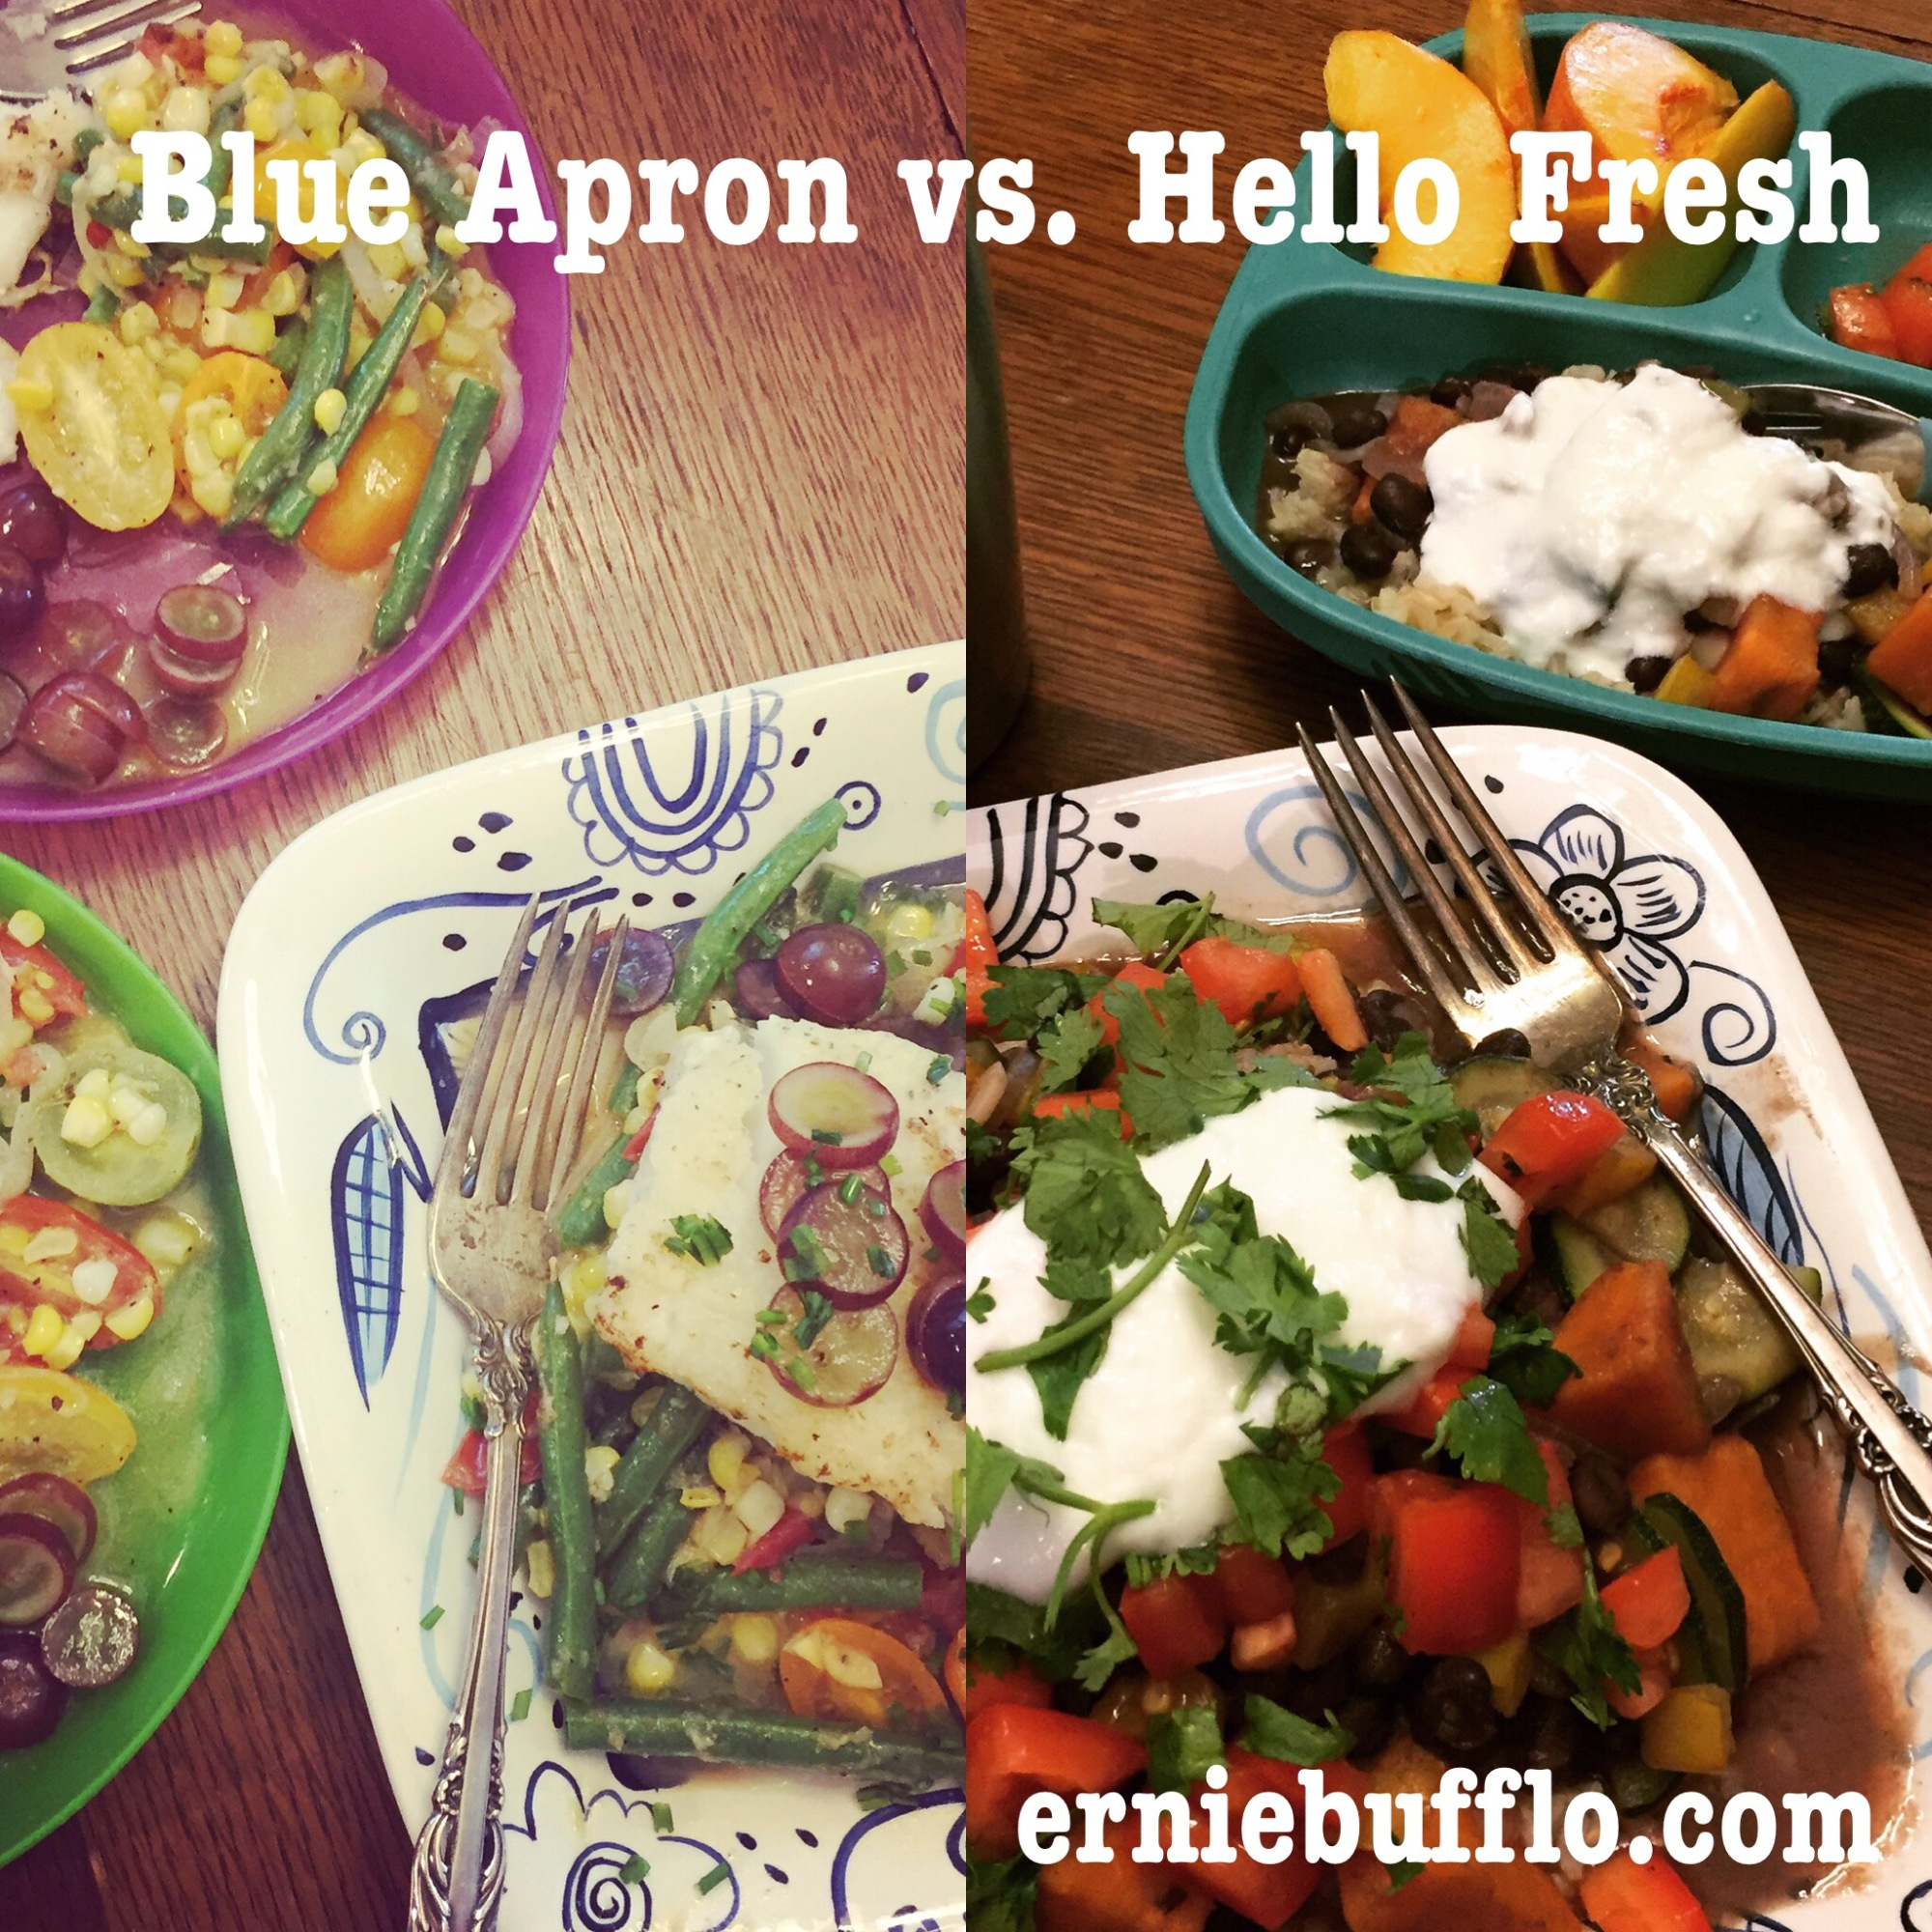 Blue Apron vs. Hello Fresh, which comes out on top? | erniebufflo.com